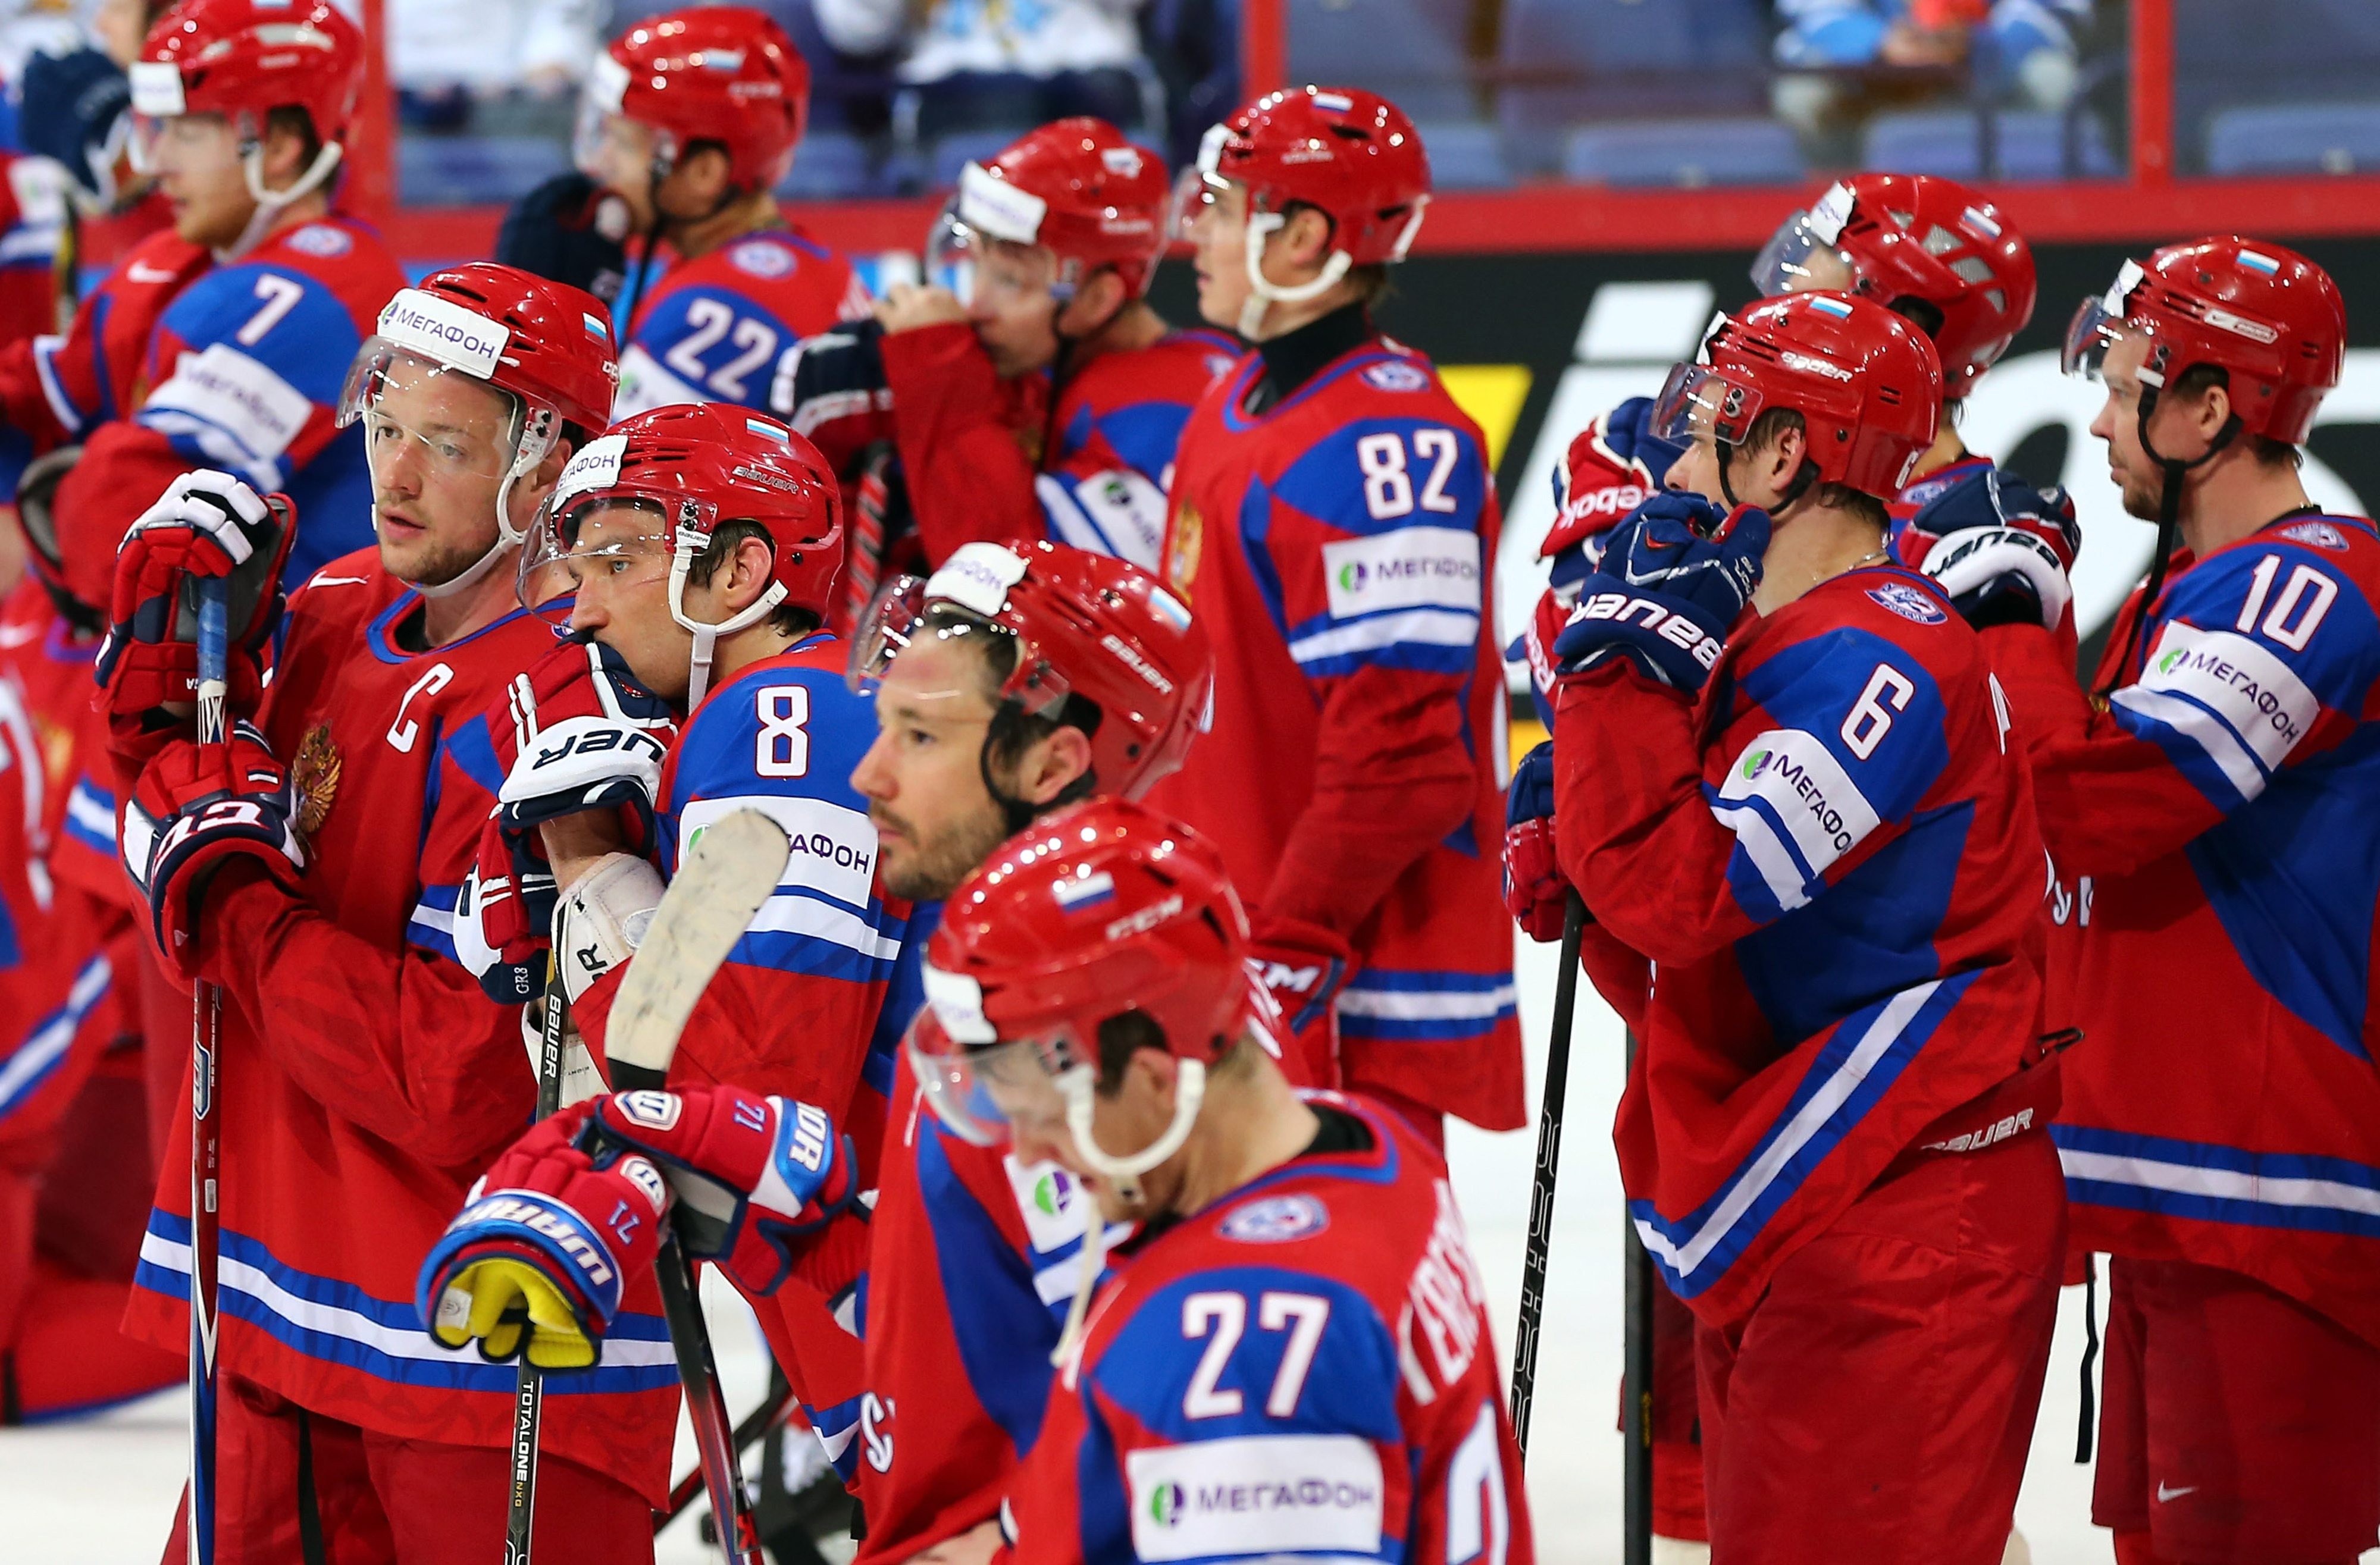 Disappointment has defined the Russian hockey program since the split of the Soviet Union.